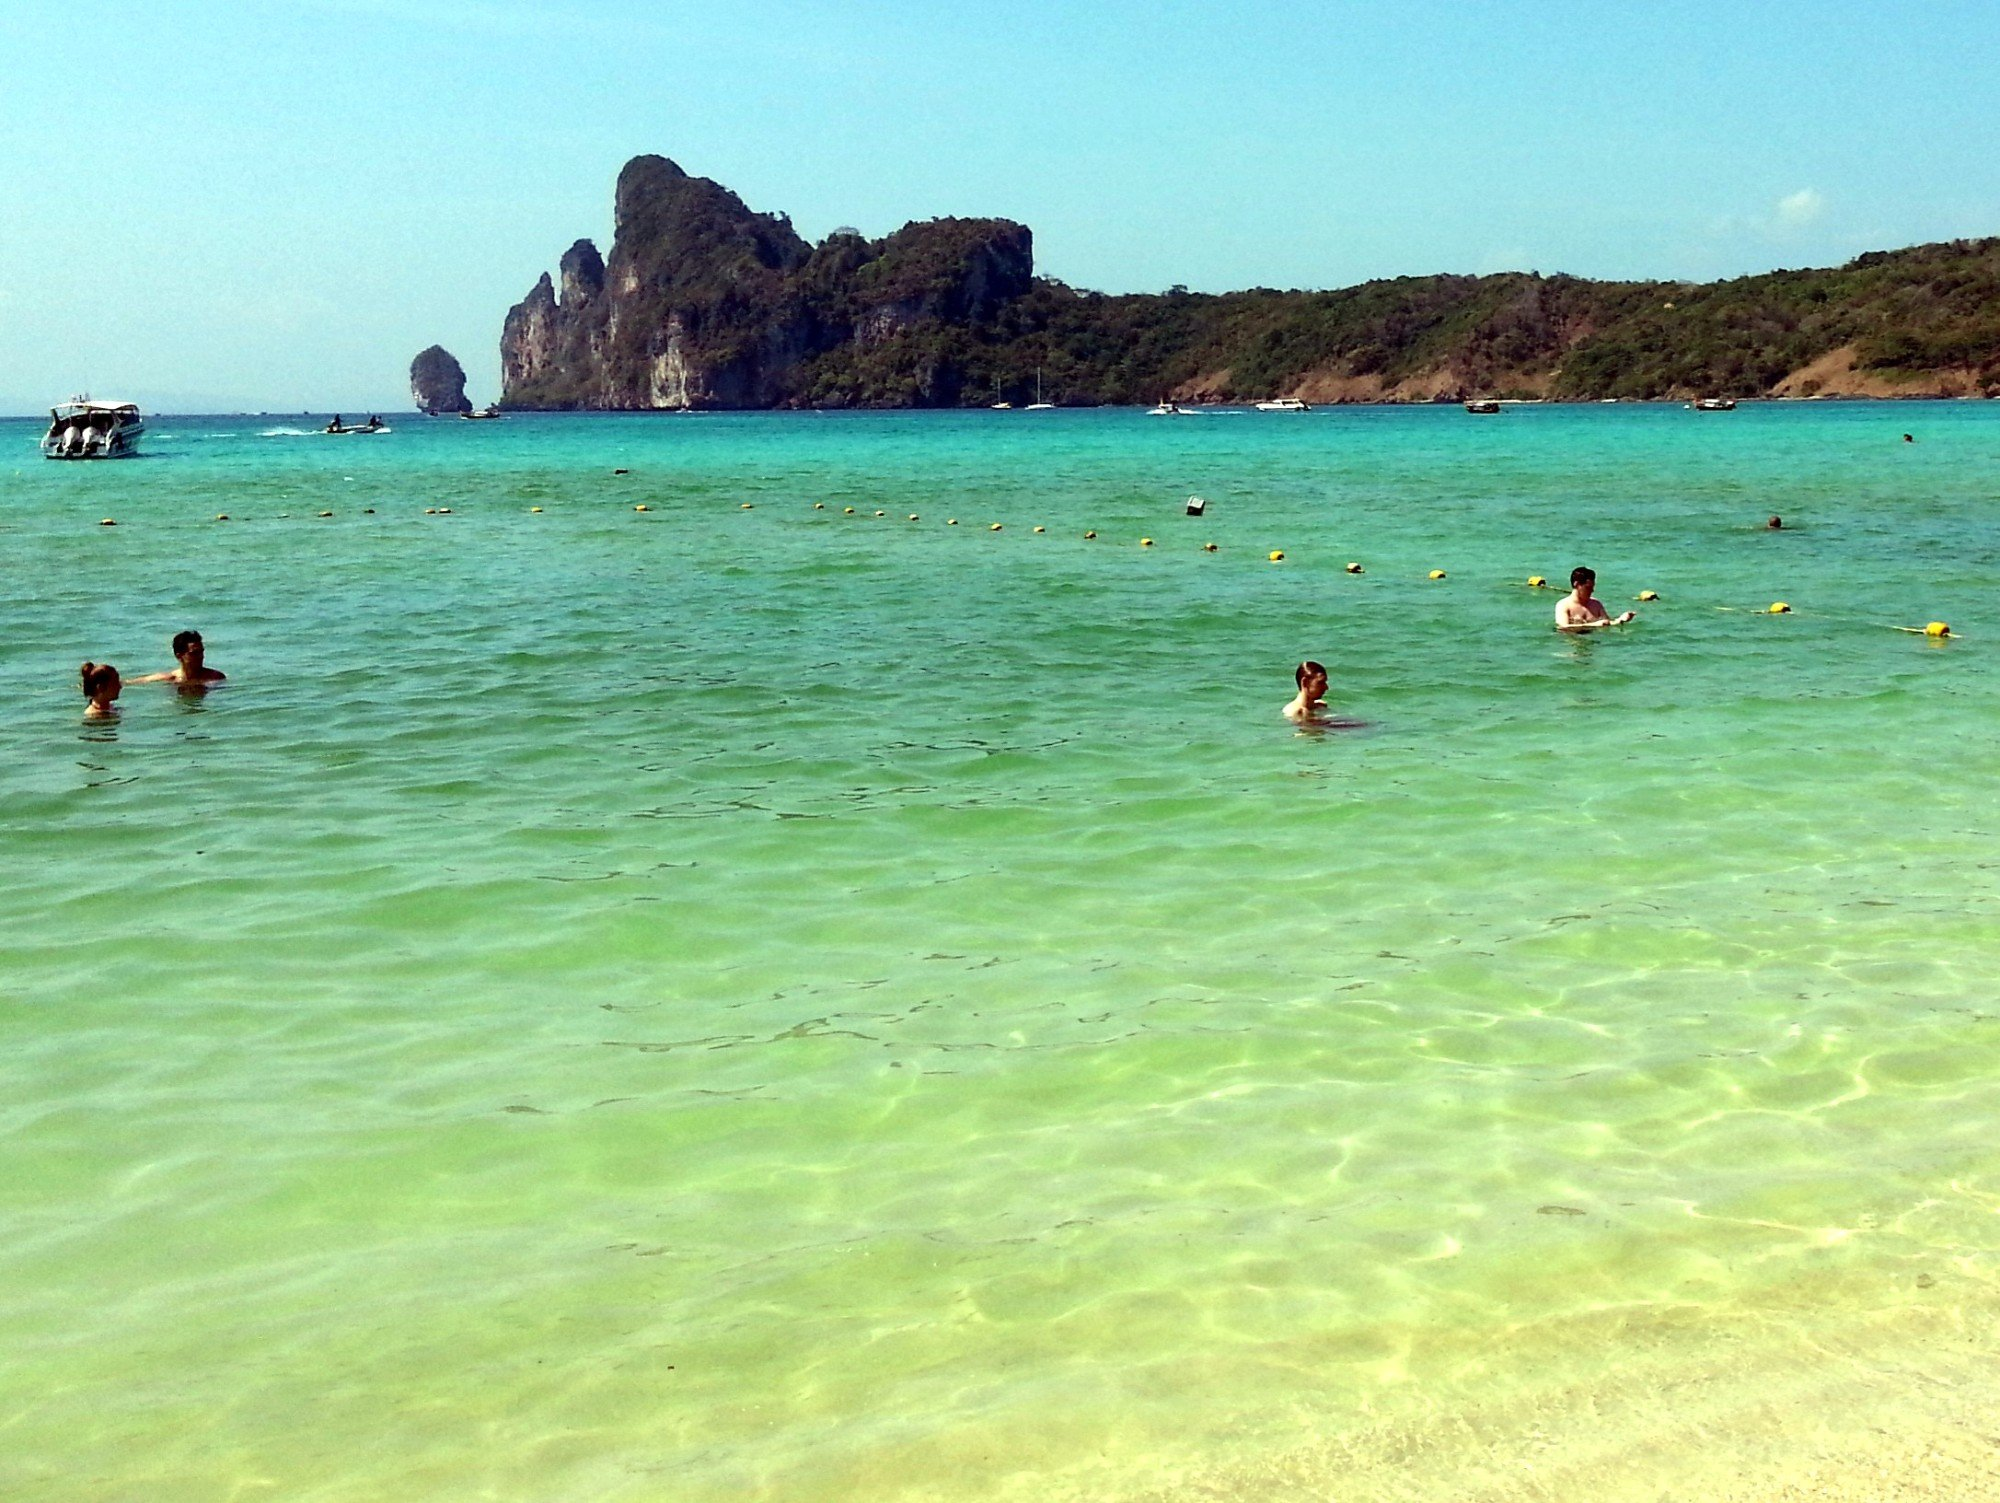 Swimmers on Loh Dalum Beach